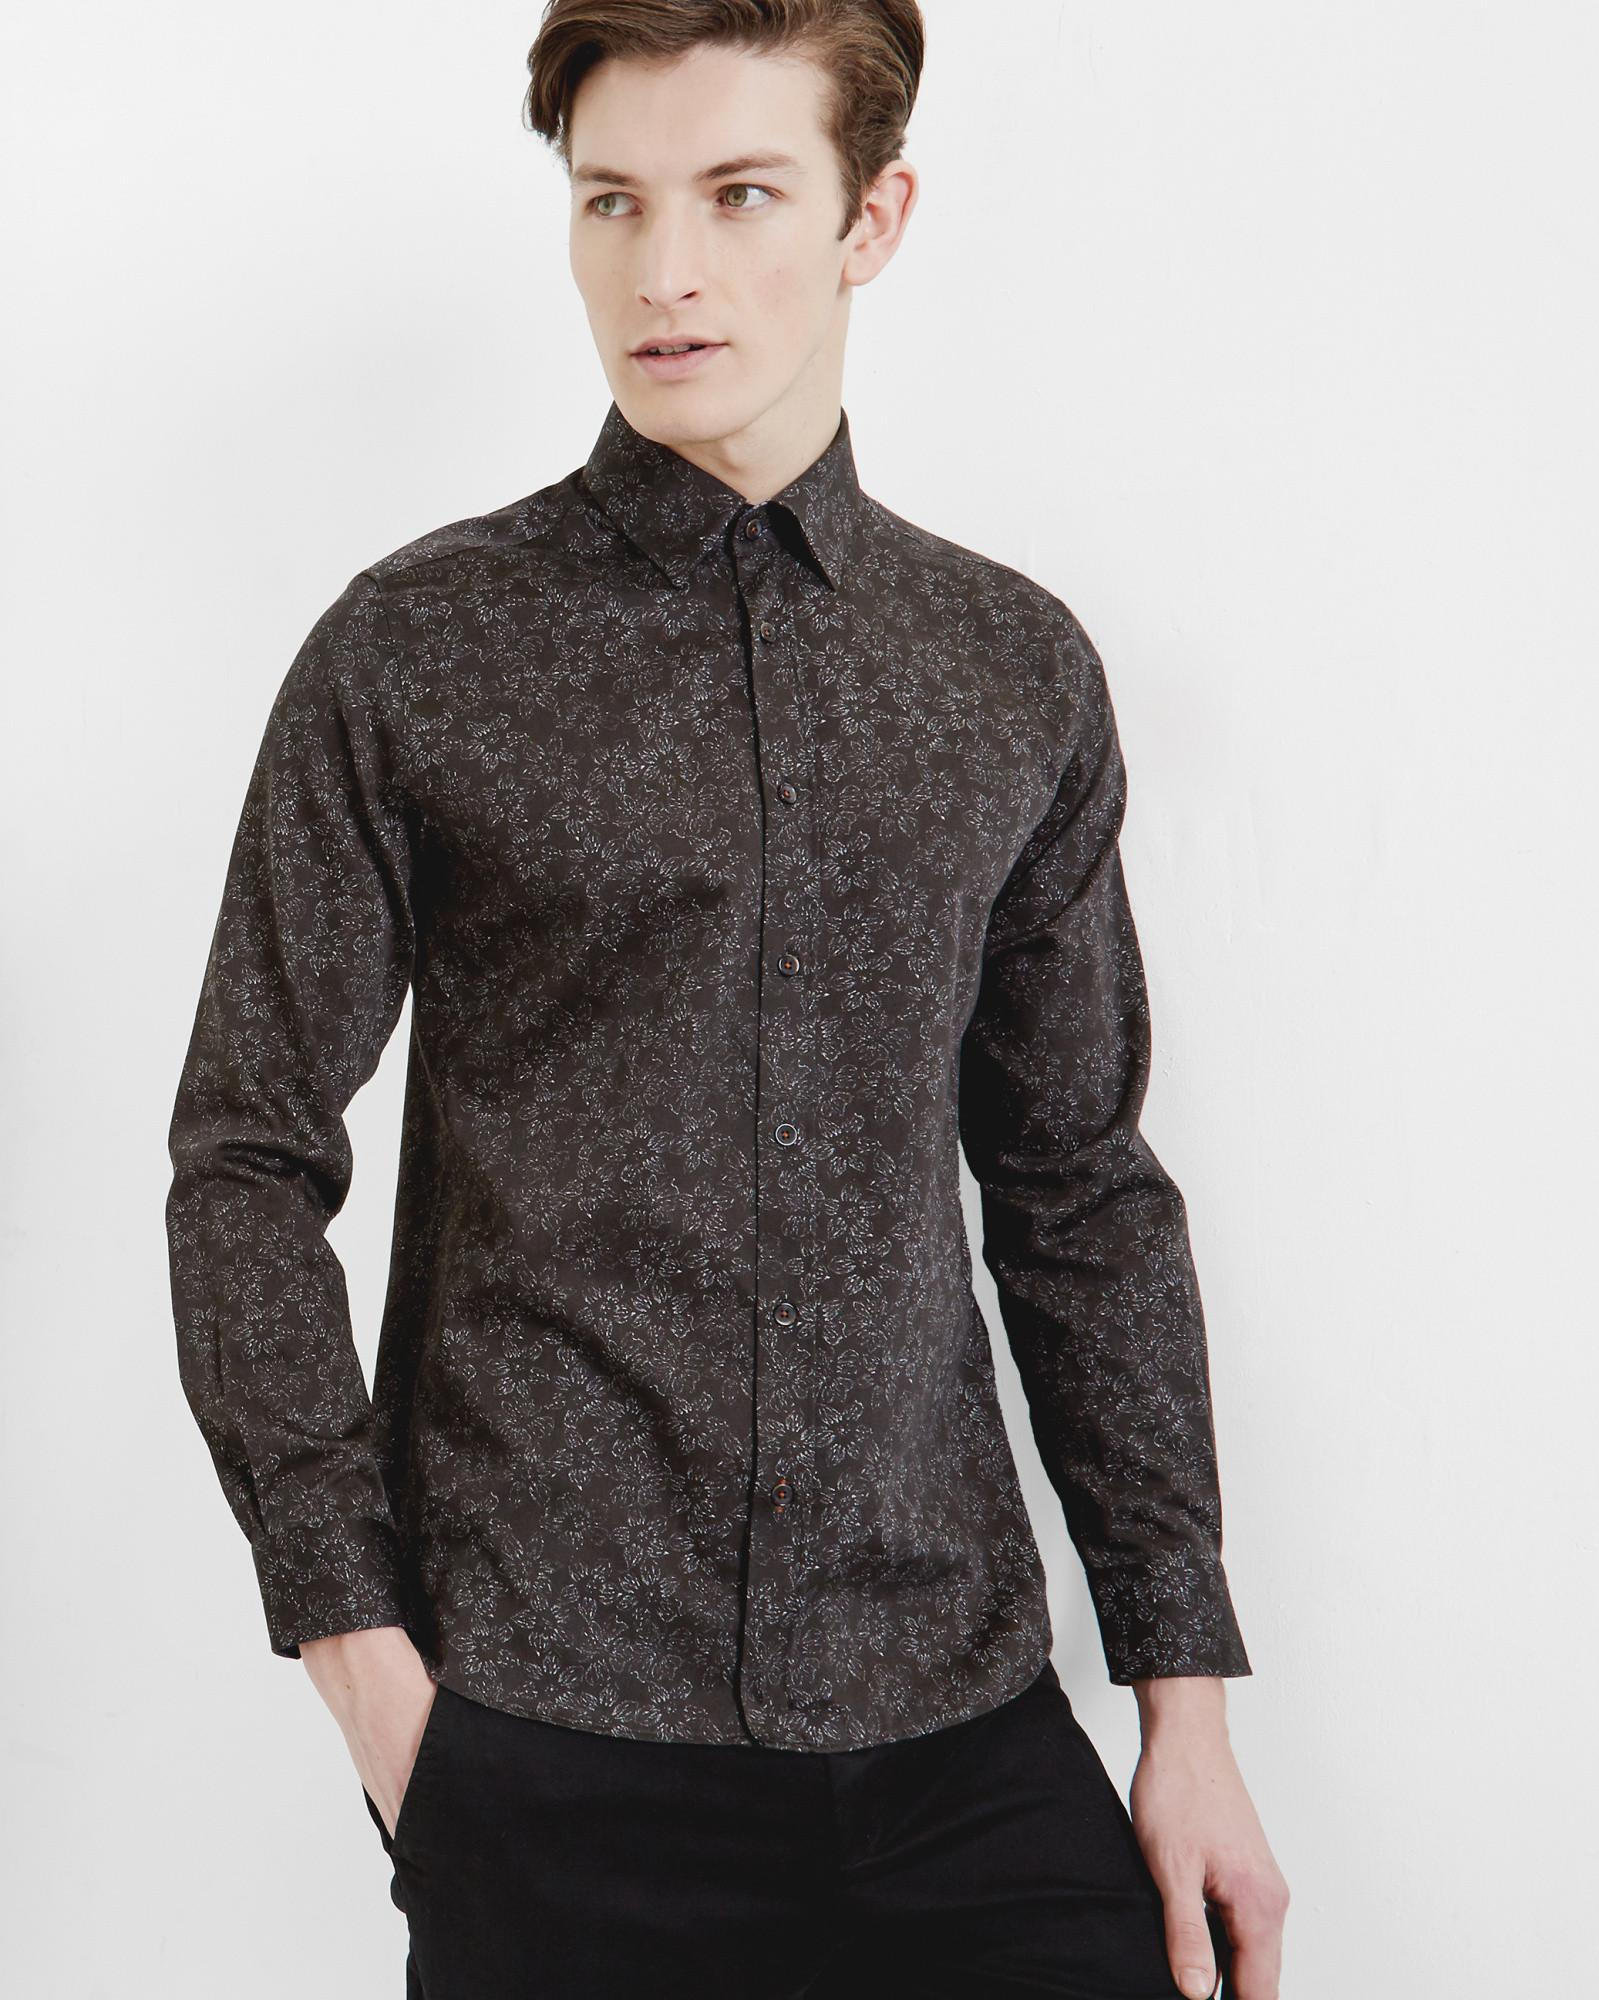 Ted Baker Faded Floral Print Cotton Shirt In Black For Men